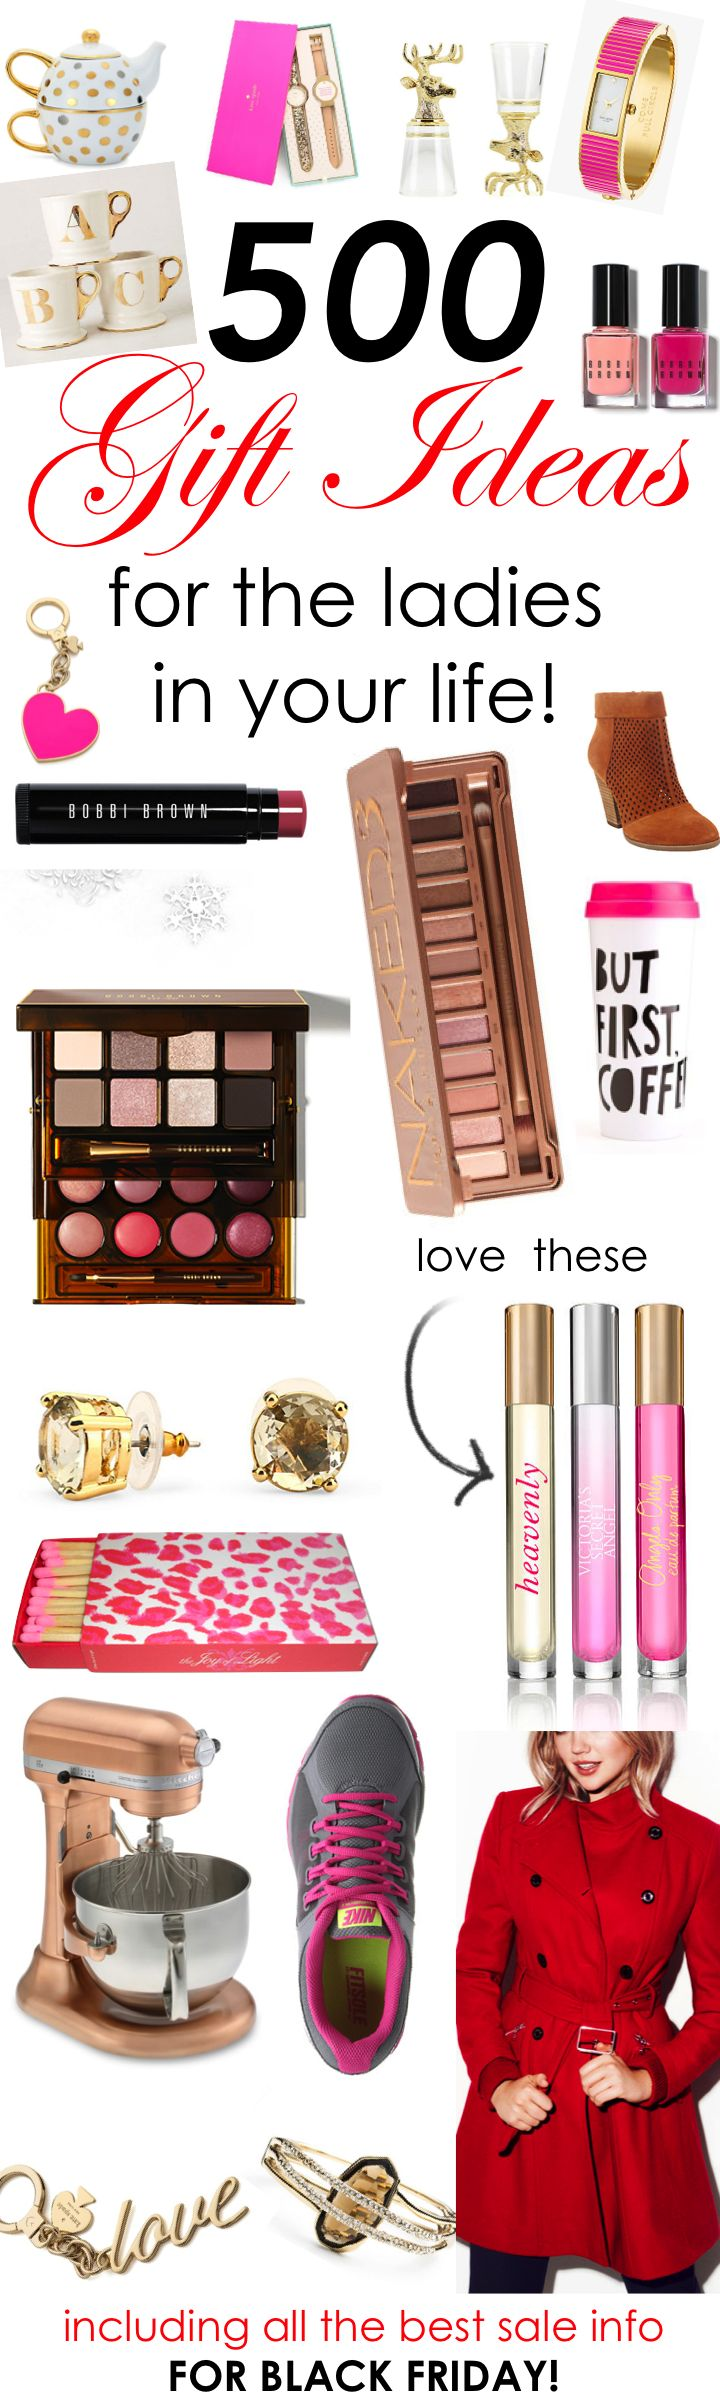 Over 500 Gift Ideas for the Ladies in Your Life! www.theperfectpal...